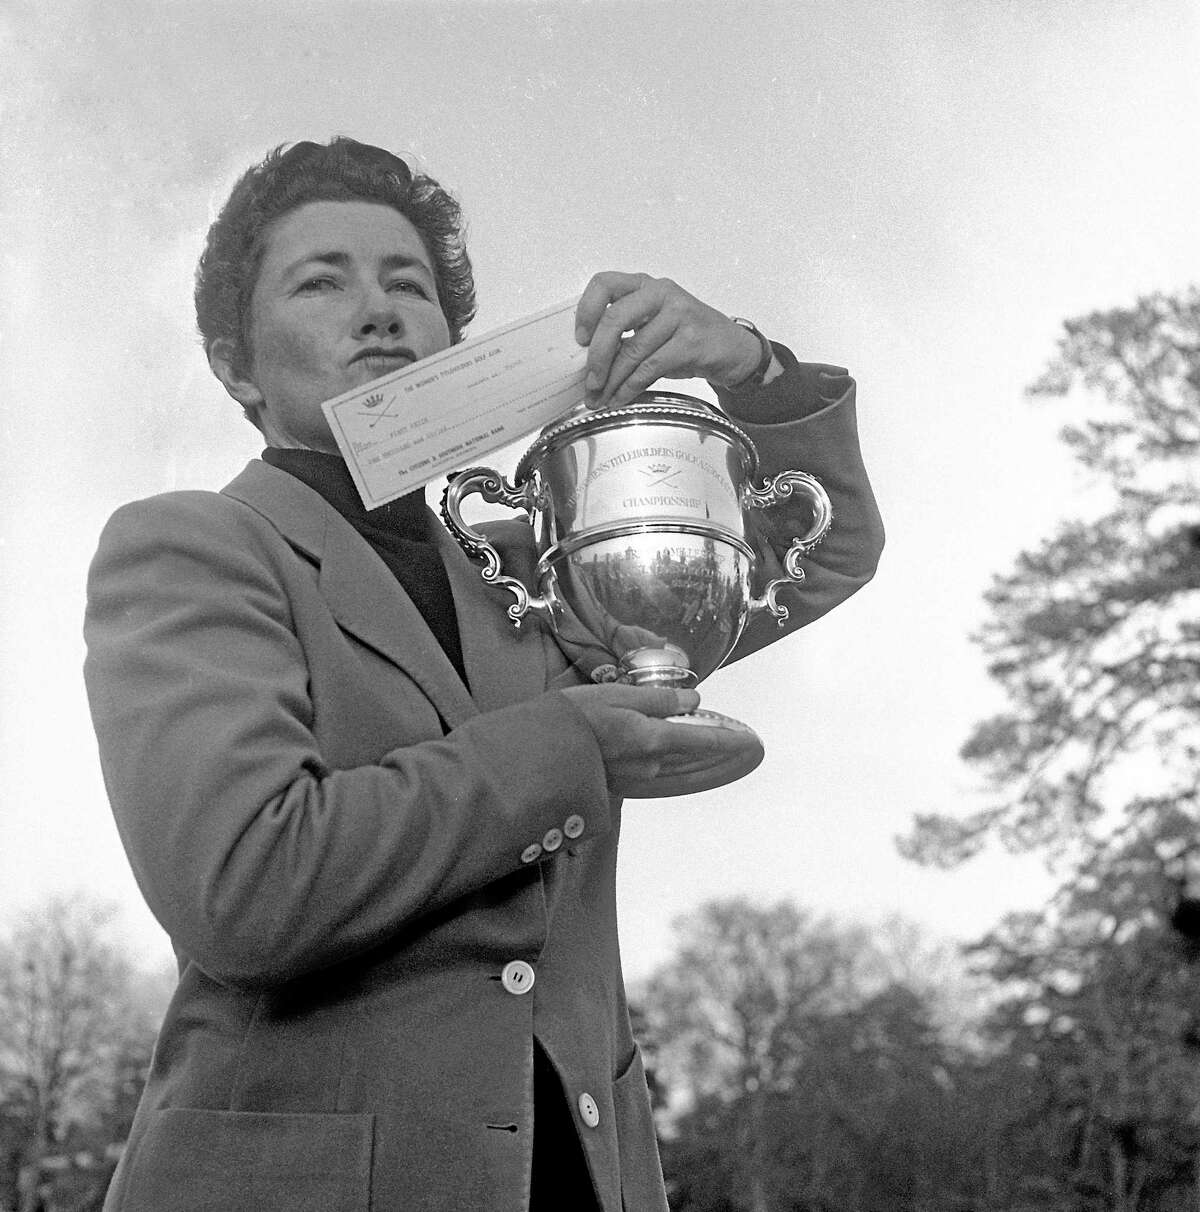 Louise Suggs holds up the winner's cup and a check for $1,000 after winning the Women's Titleholders championship in 1959 in Augusta, Ga.